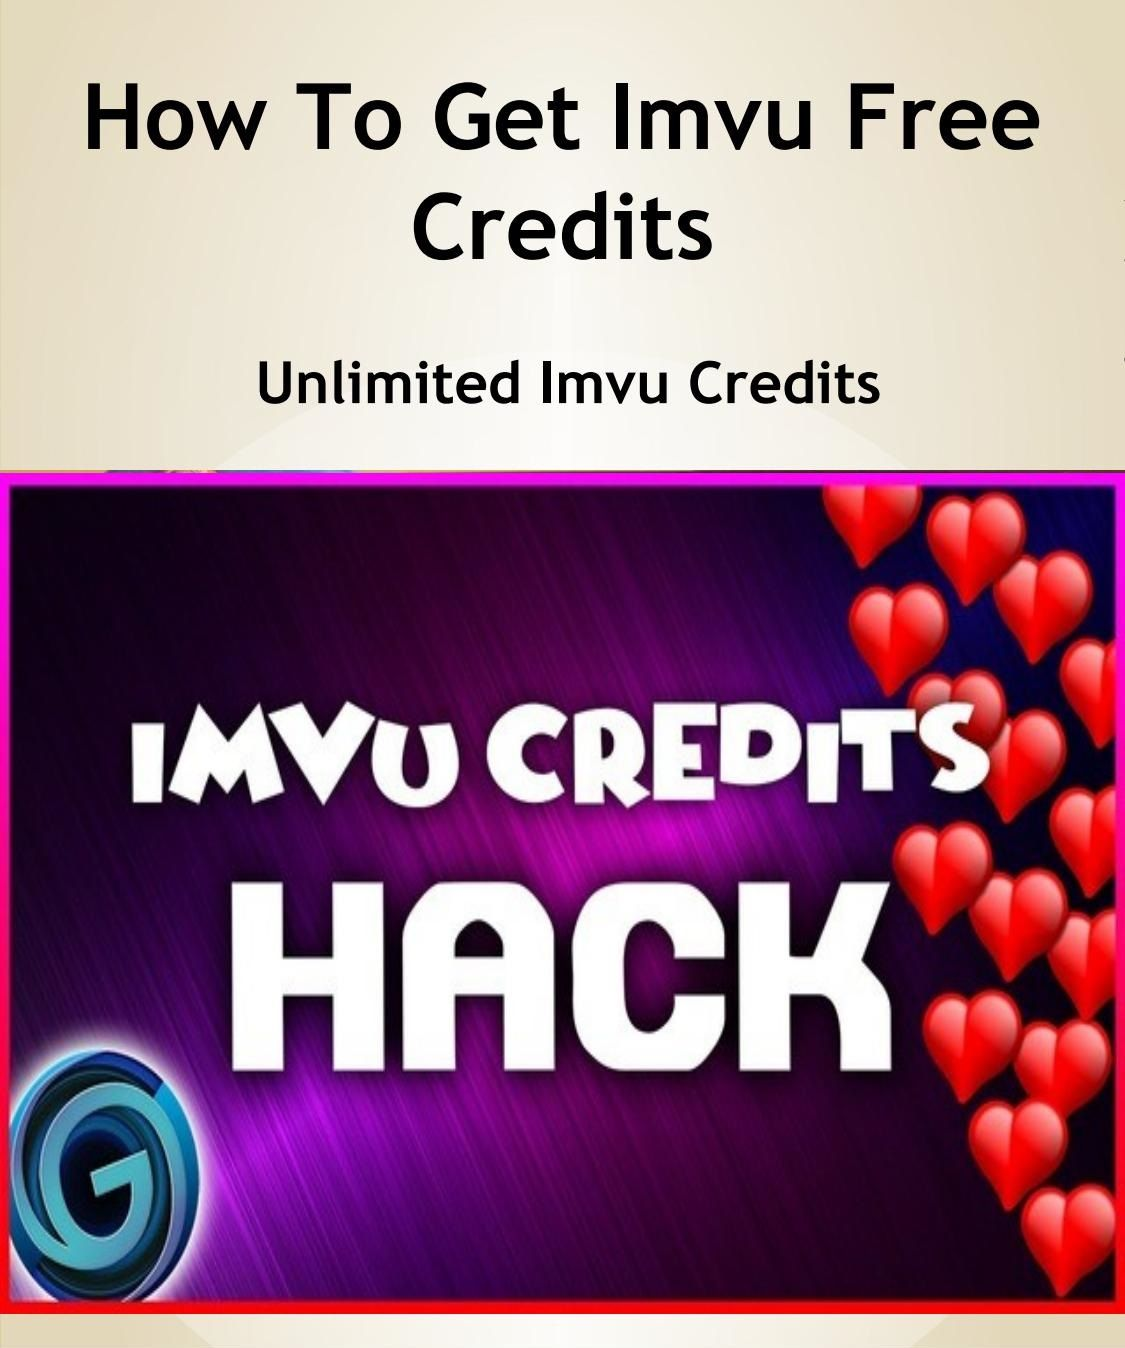 Juegos Endorphina Slots Robux Gratis Hack 100 Working Imvu Mod Apk Ipa Hack 2020 Unlimited Credits Android Ios In 2020 Imvu Hacks Cheating